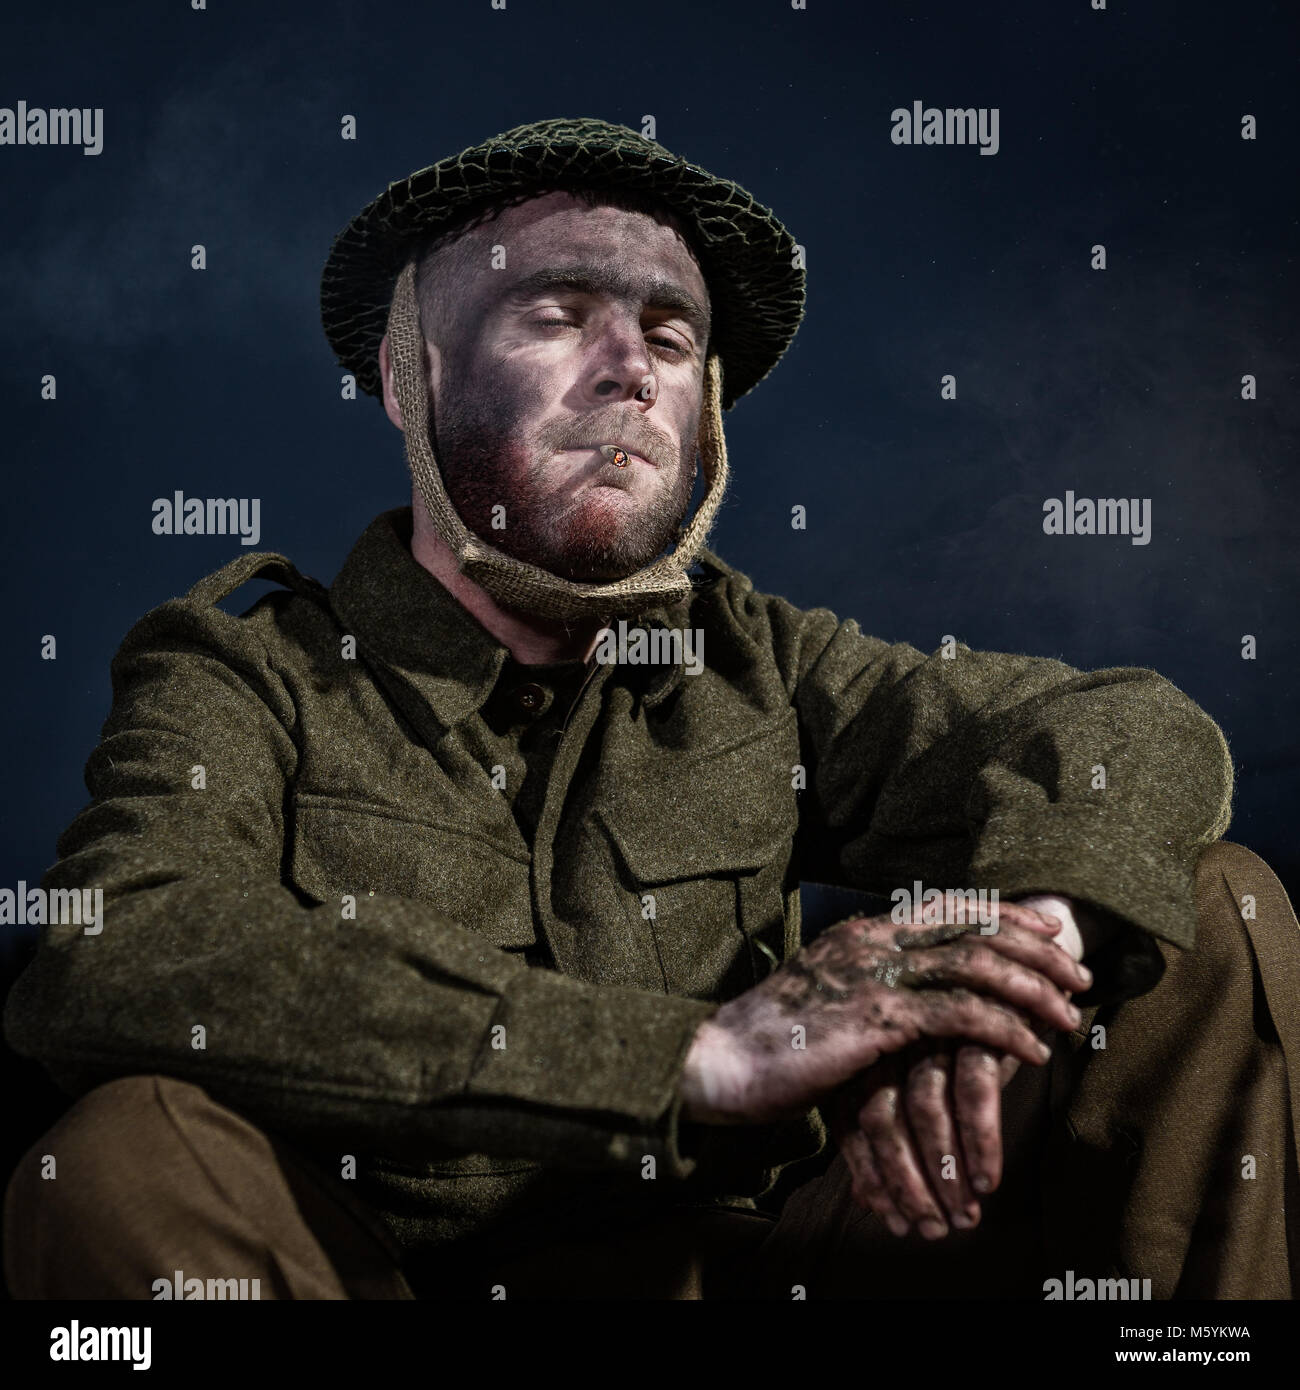 ww2 themed images of a soldier in authentic tunic set in the bleak winter snow - Stock Image